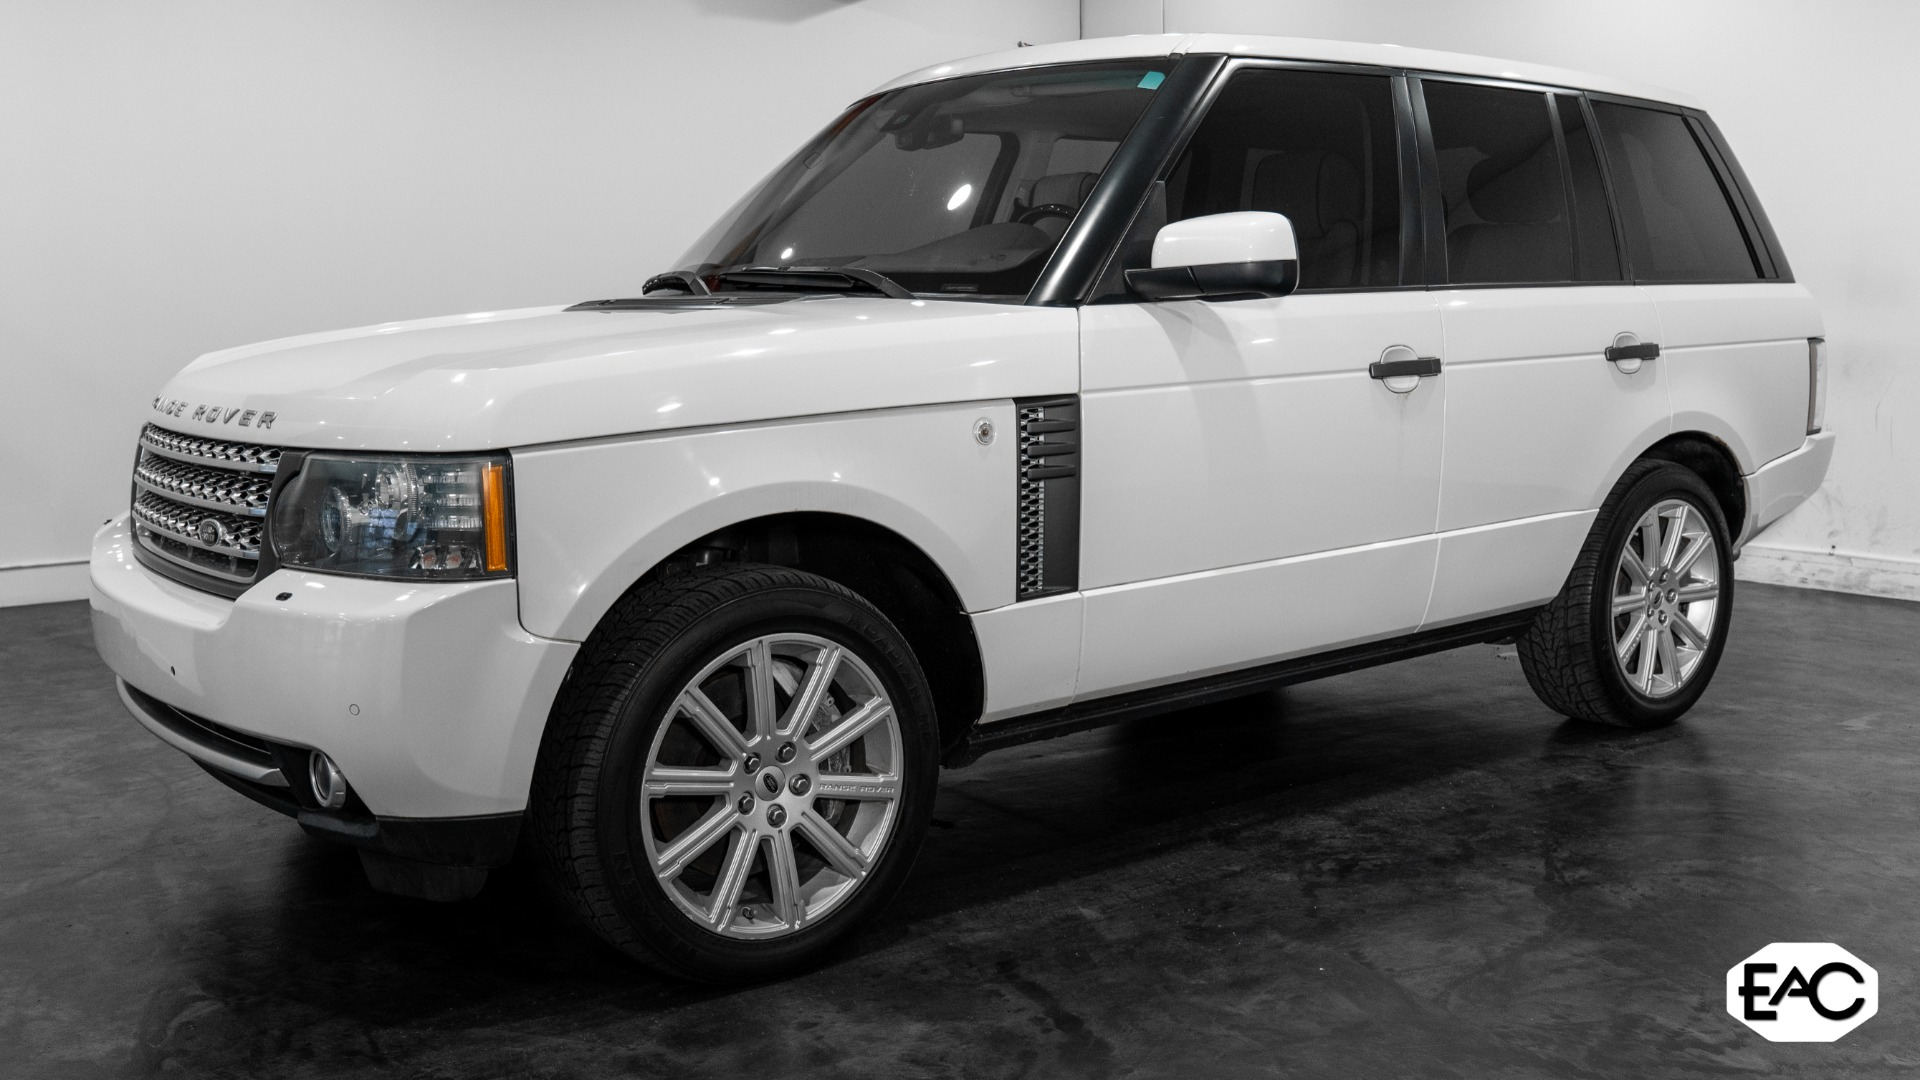 Used 2010 Land Rover Range Rover Supercharged for sale Sold at Empire Auto Collection in Warren MI 48091 1